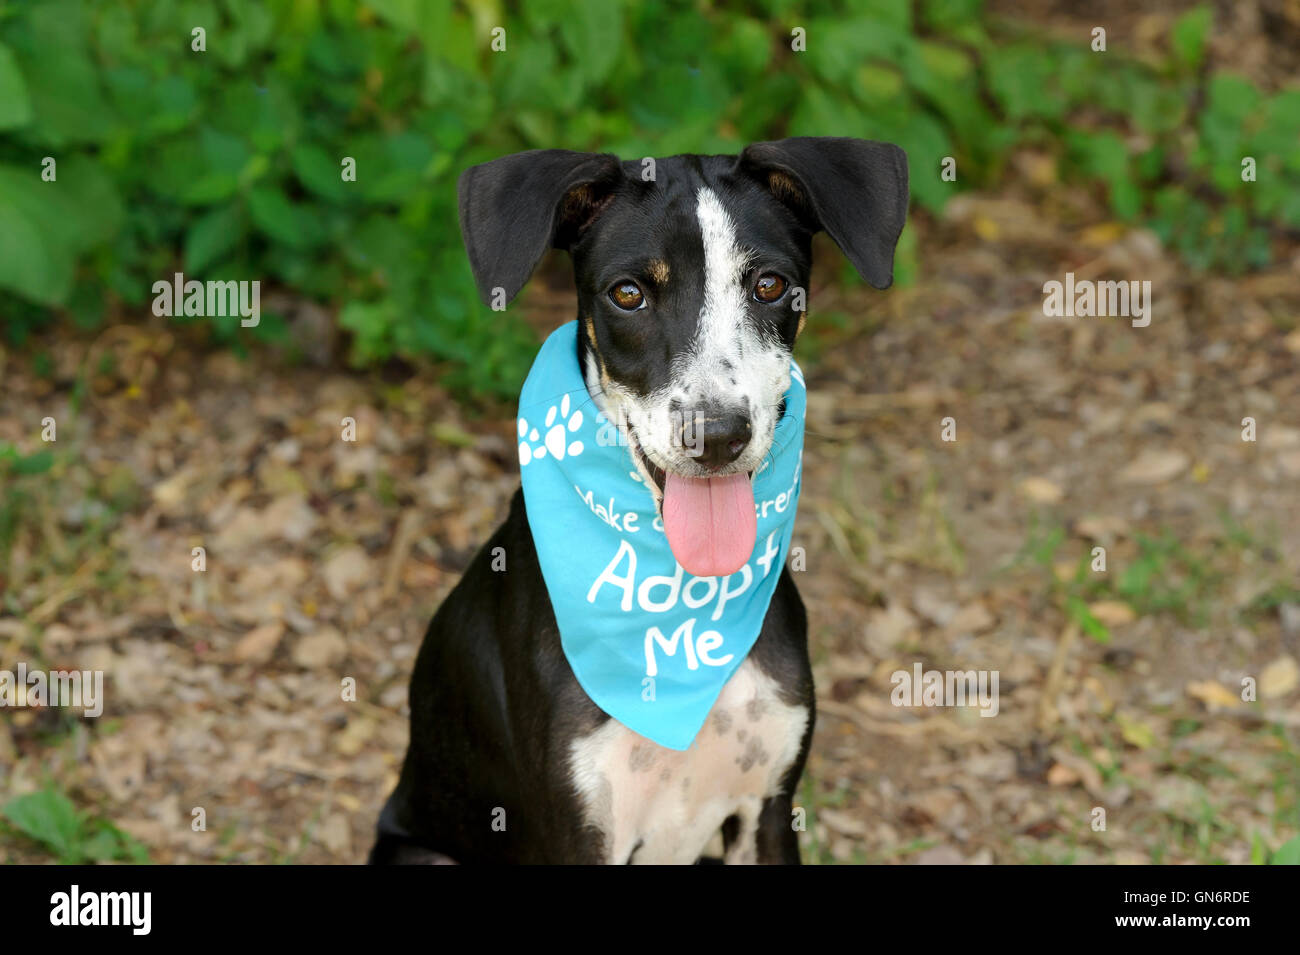 Dog adoption is a shelter animal with bright brown eyes and big adorable floppy ears hoping to be adopted by someone, - Stock Image